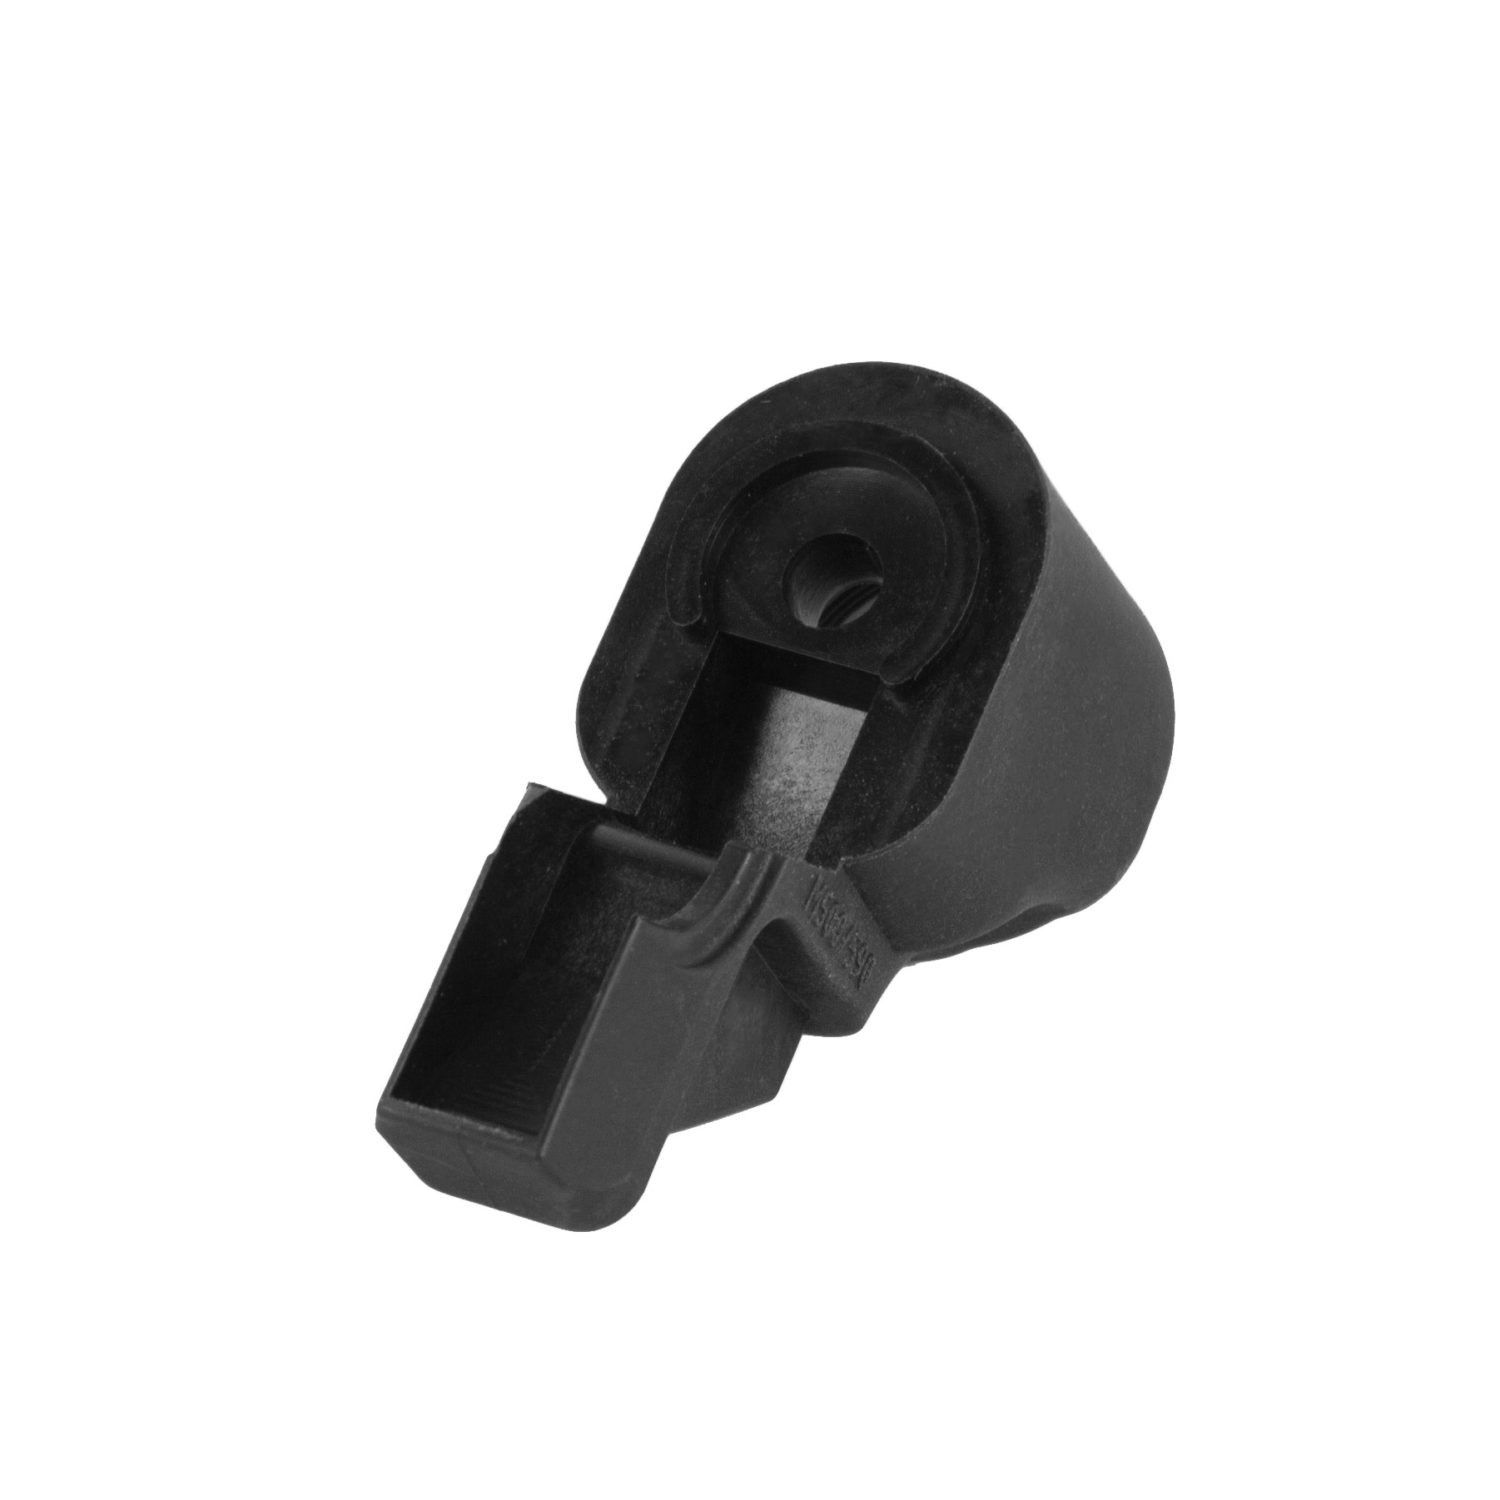 ERGO MOSSBERG 500/590 12 & 20-GAUGE SHOTGUN STOCK ADAPTER